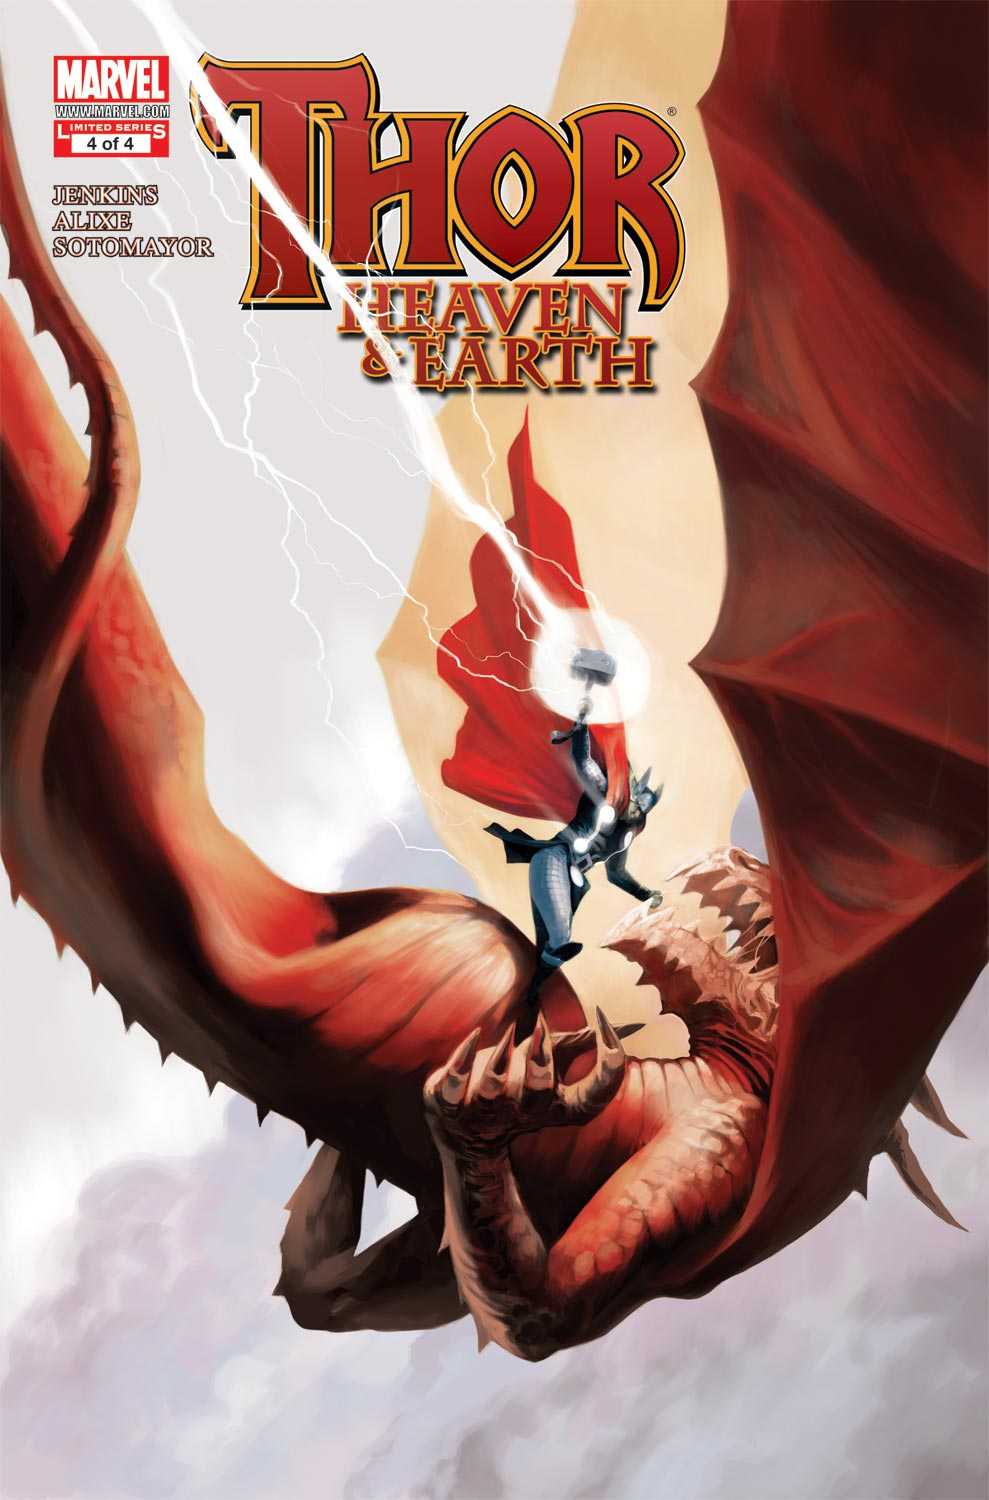 Thor: Heaven & Earth (2011) #4